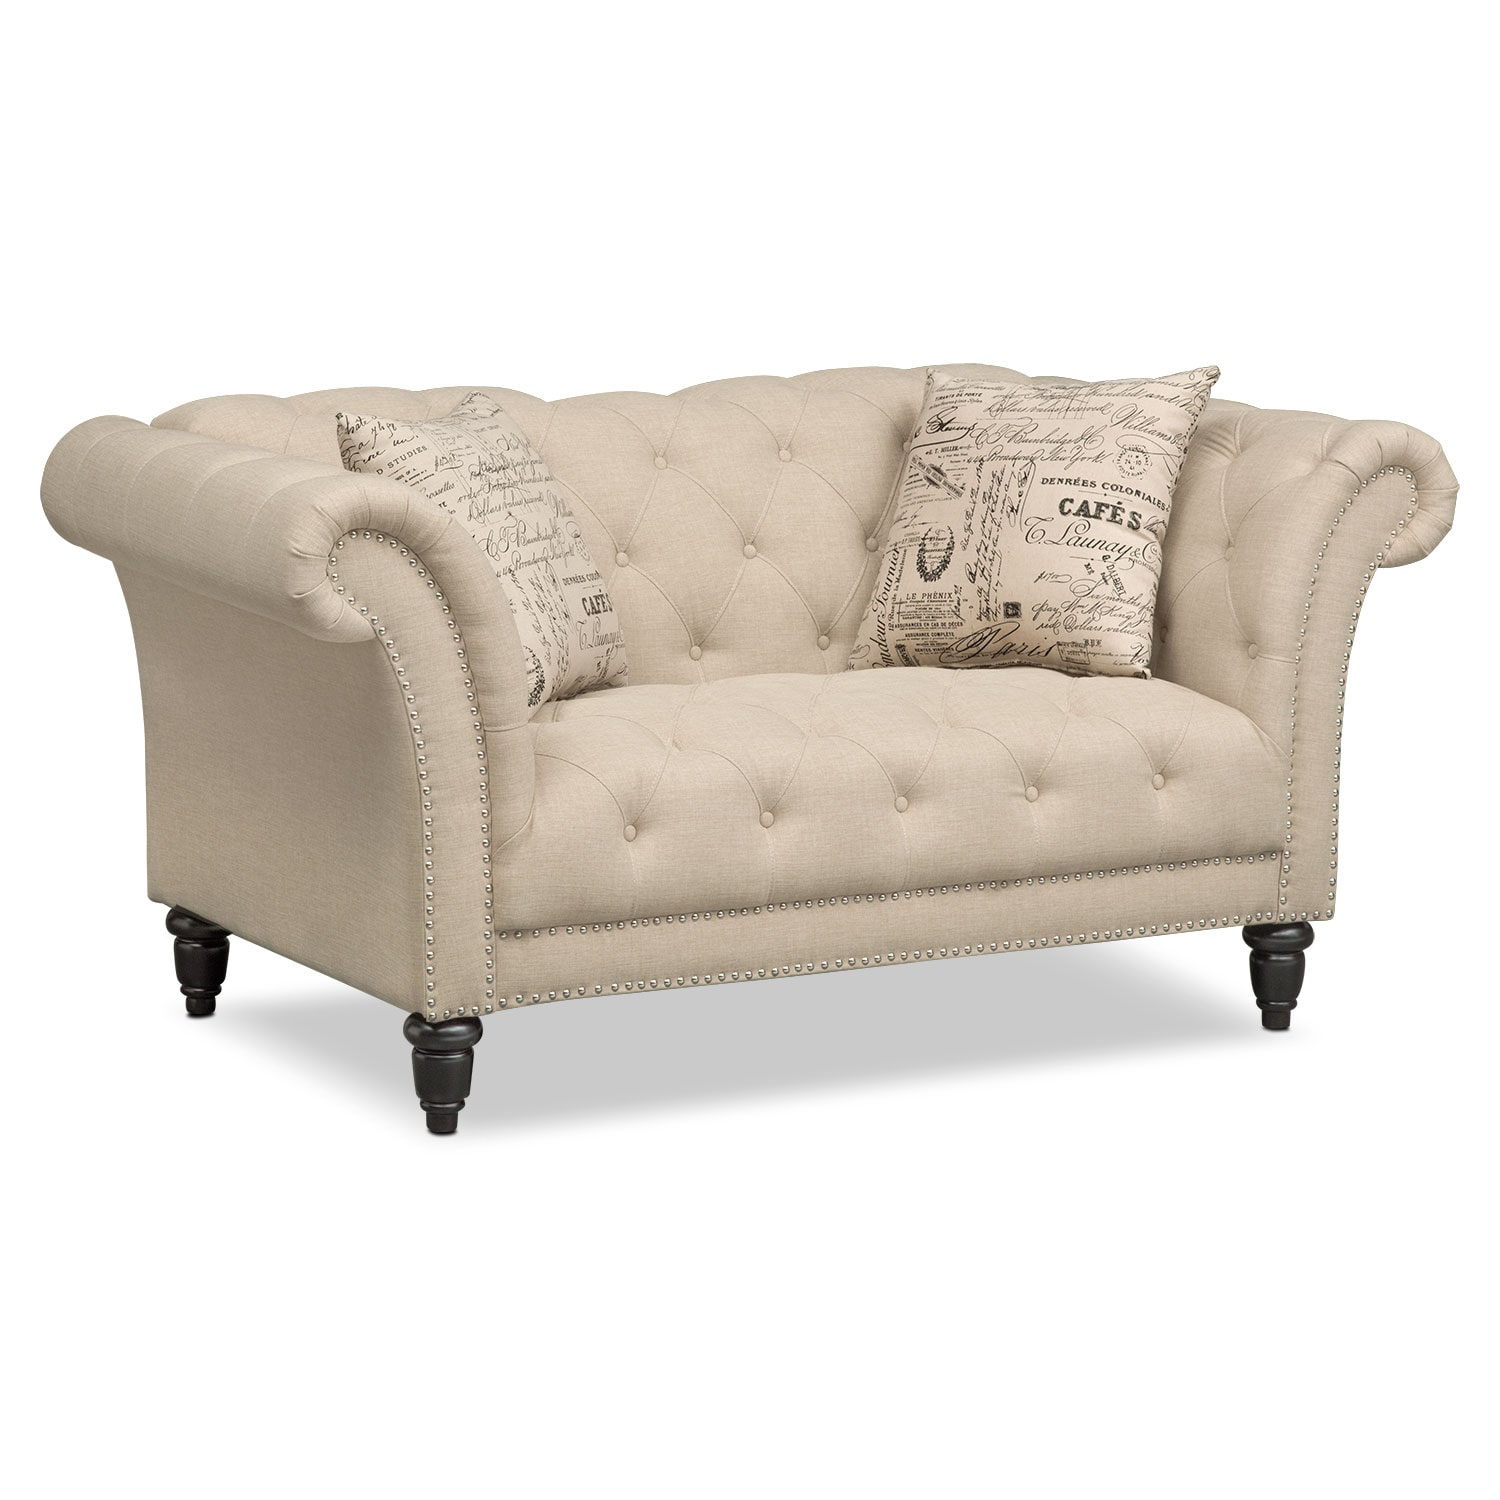 Marisol Sofa and Loveseat Beige